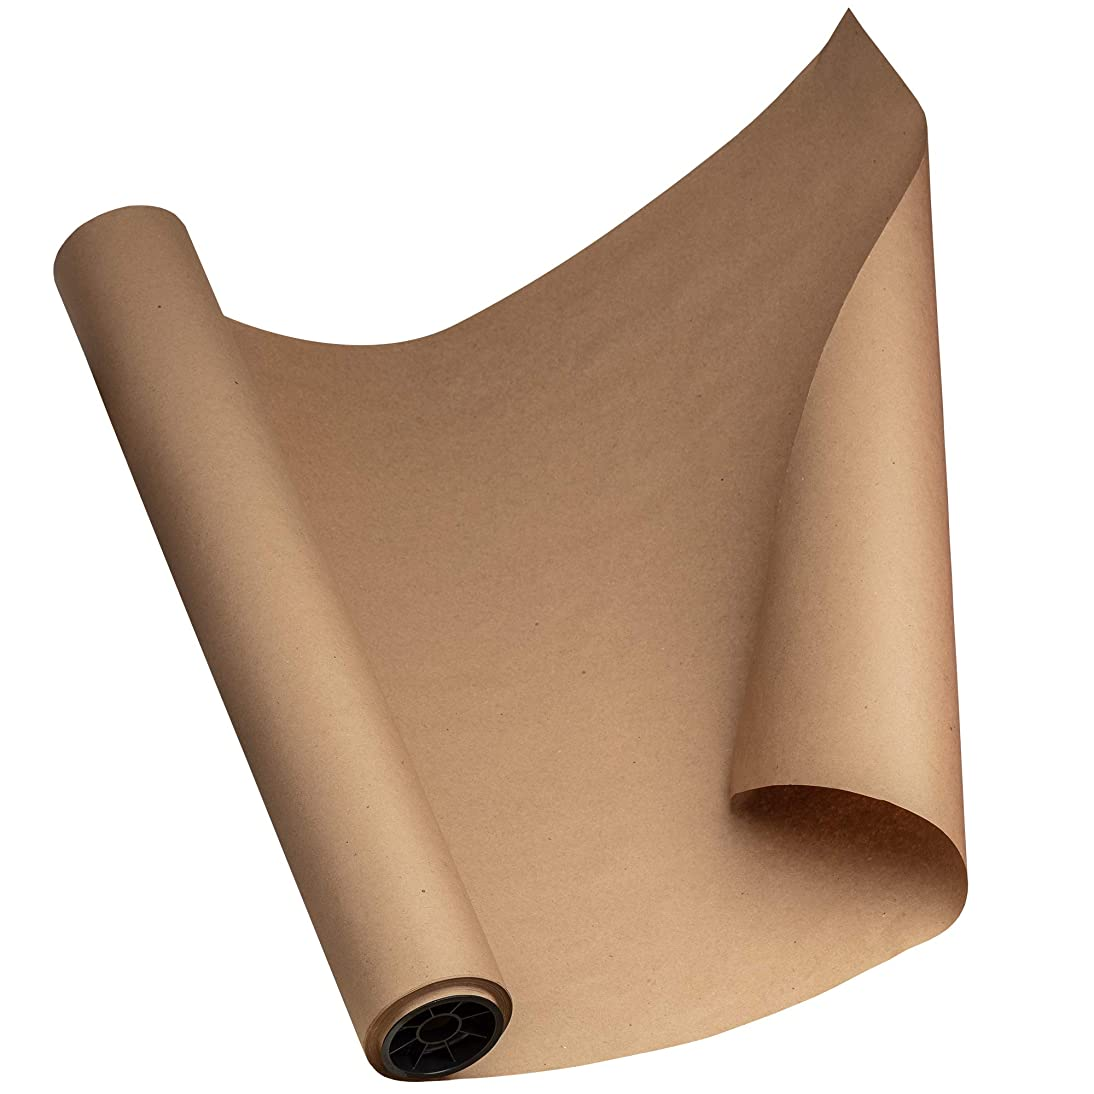 Kraft Paper Roll 24'' X 1800'' (150ft) Brown Mega Roll - Made in Usa 100% Natural Recycled Material - Perfect for Packing, Wrapping, Butcher, Craft, Postal, Shipping, Dunnage and Parcel